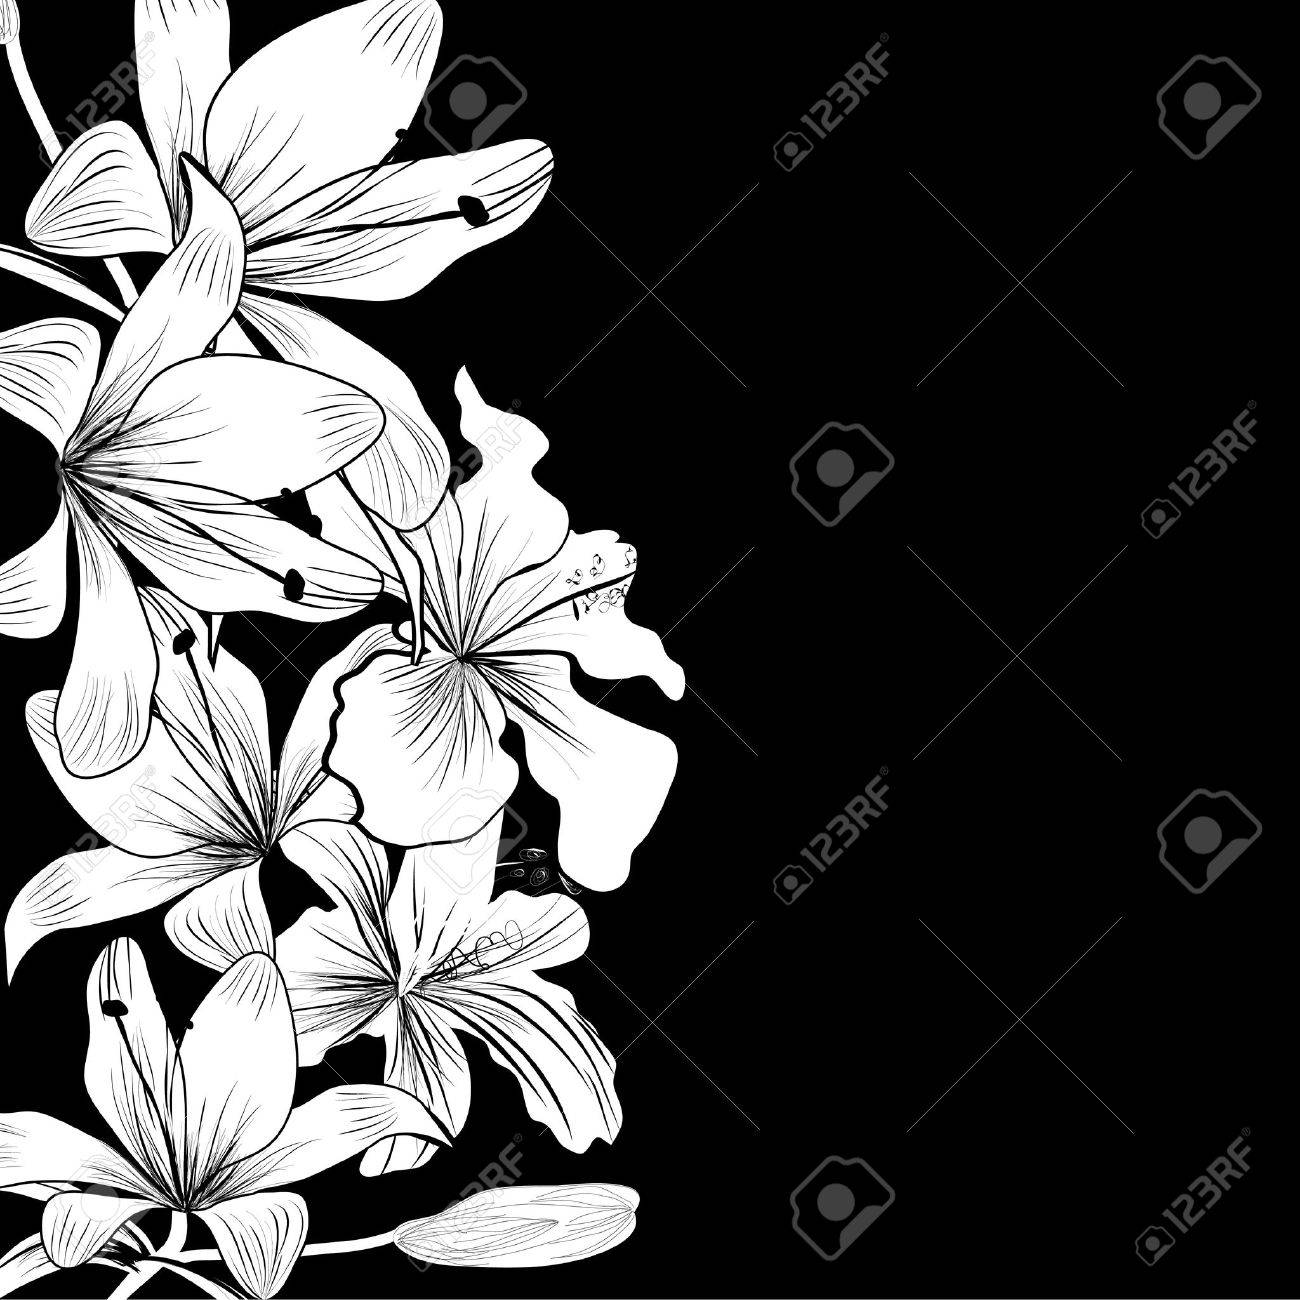 black and white background with white flowers stock vector - Black And White Flowers